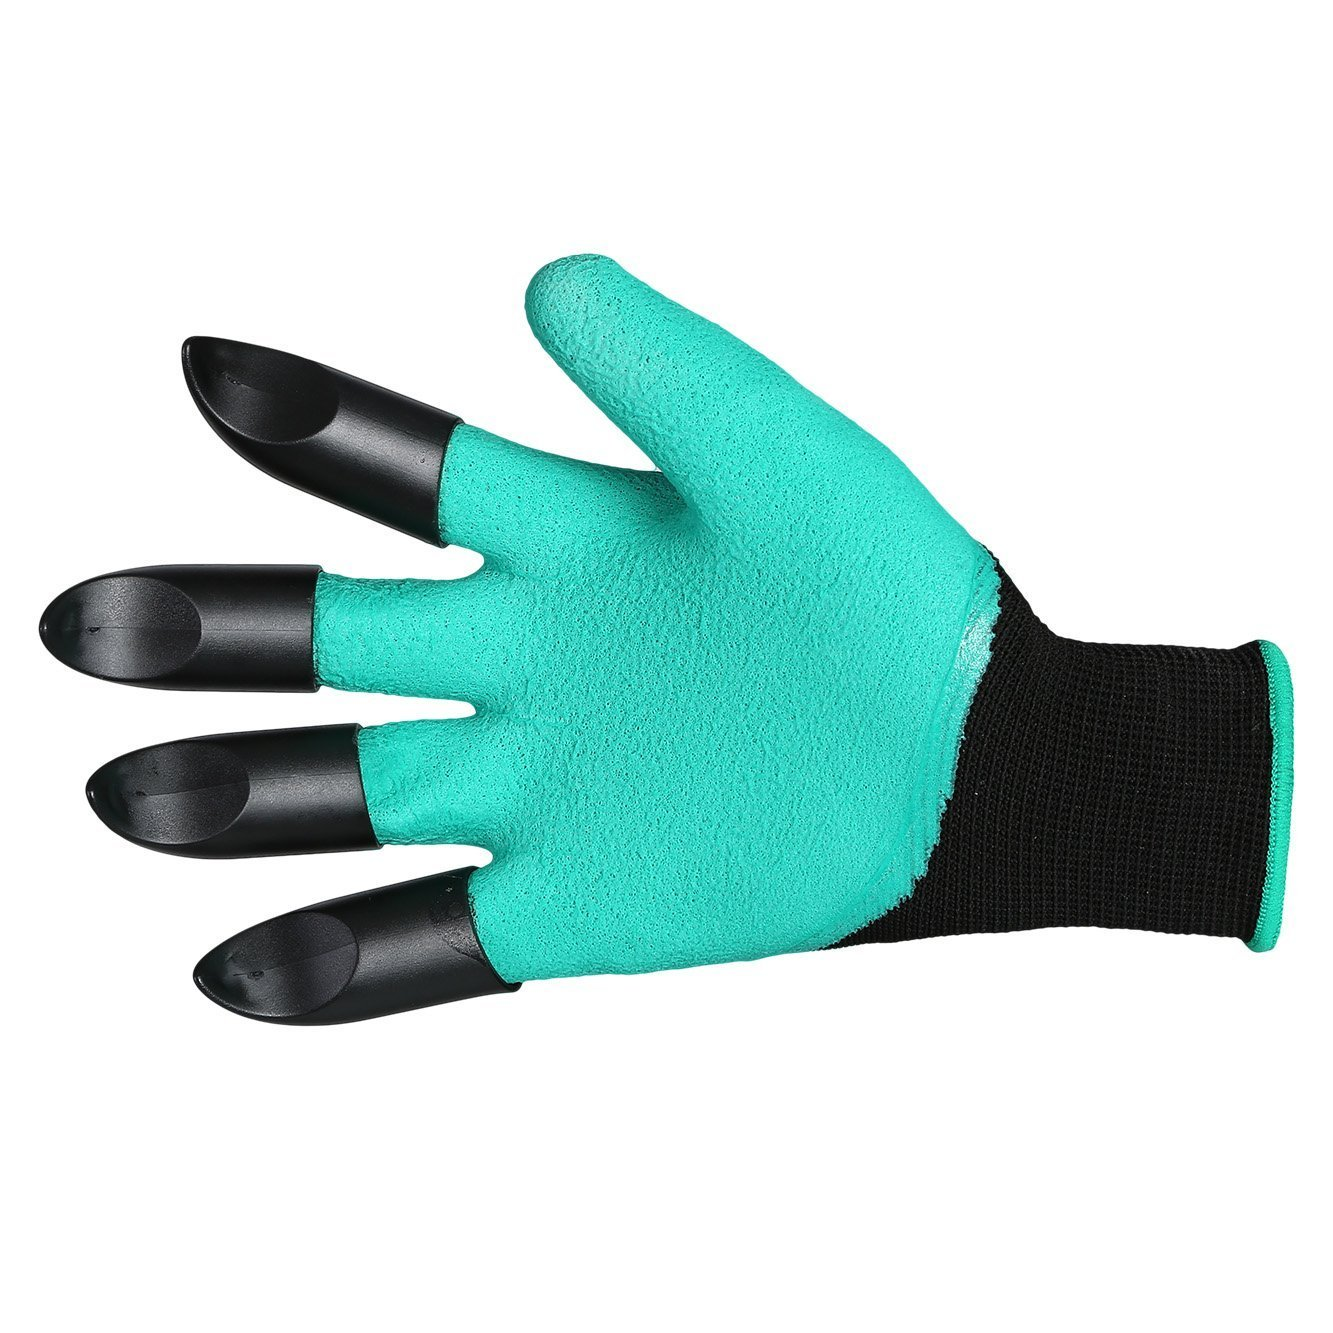 Meanch Garden Gloves with Fingertips Right Hand Claws Quick & Easy to Dig and Plant ¨C Great for Digging Weeding Seeding poking by Meanch (Image #1)